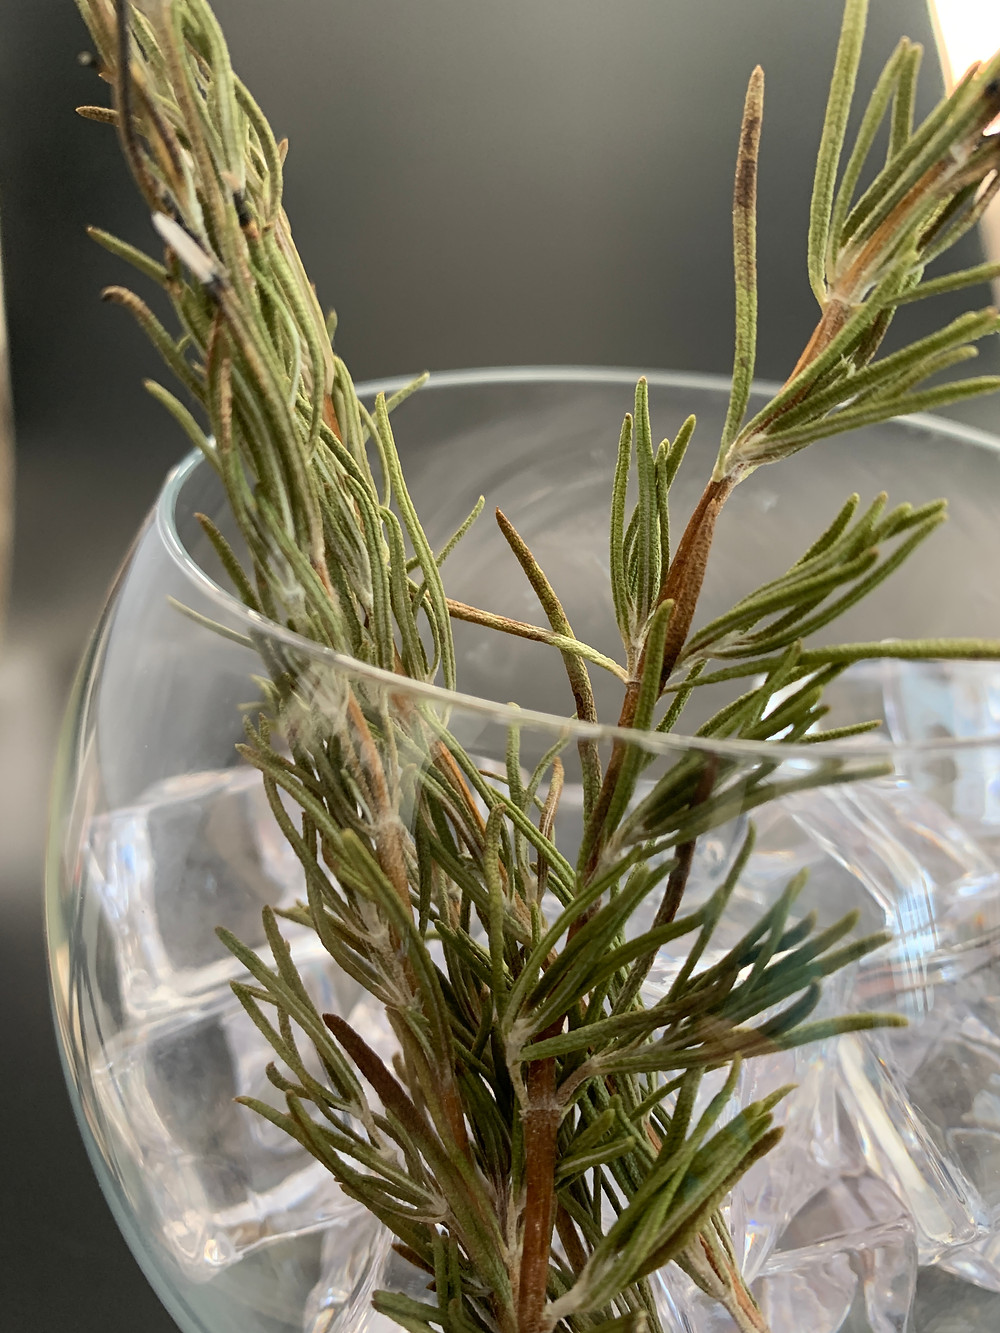 Burnt rosemary overpowering a gin and tonic